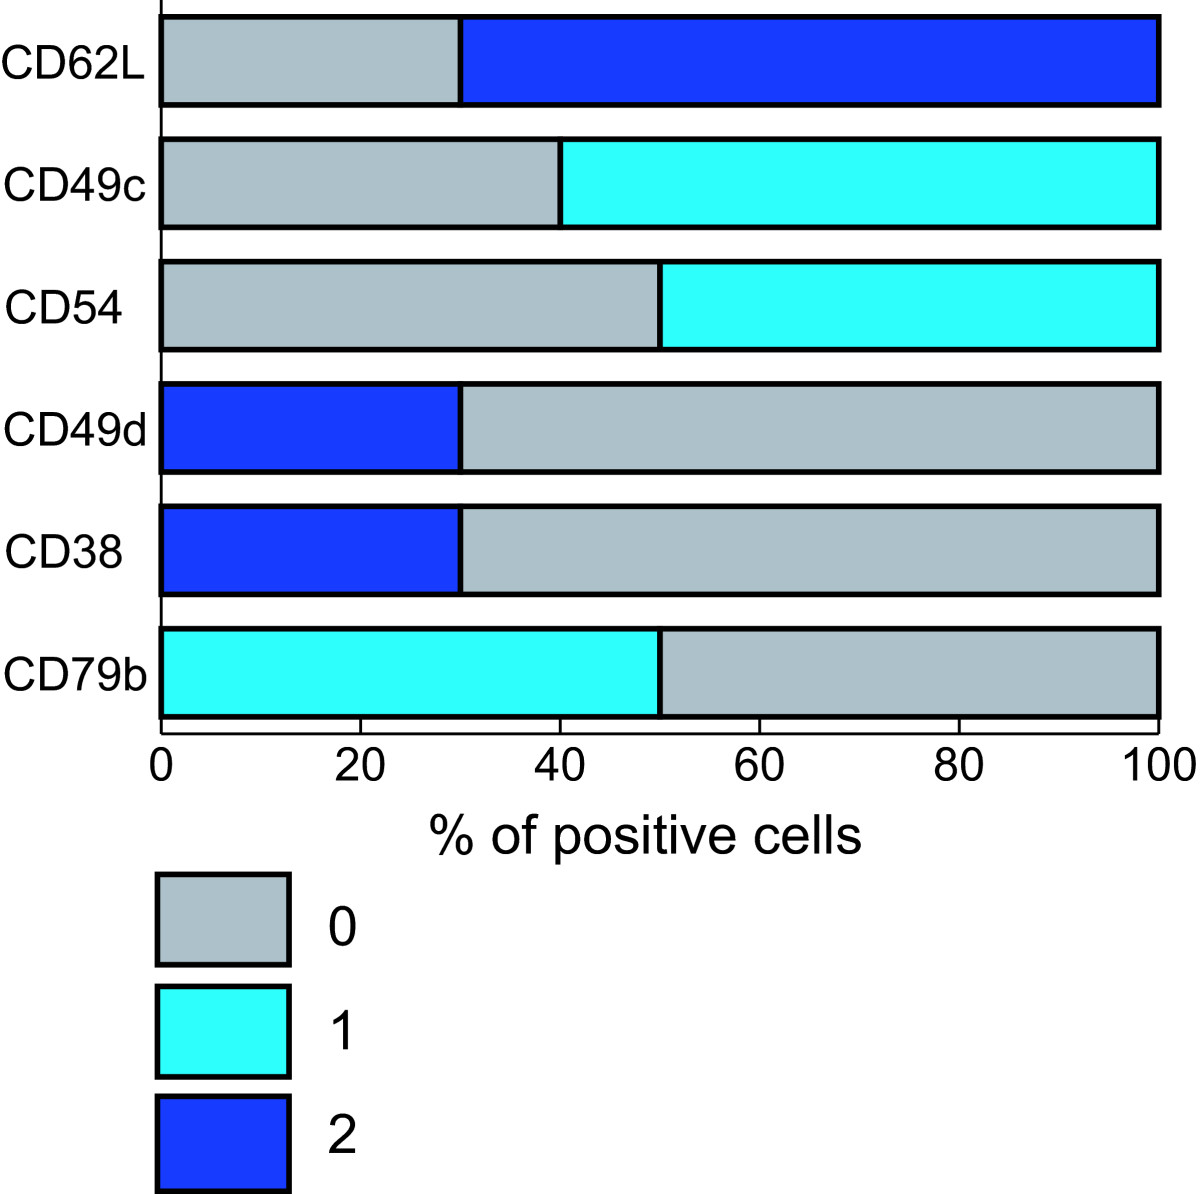 http://static-content.springer.com/image/art%3A10.1186%2F1479-5876-4-11/MediaObjects/12967_2005_Article_116_Fig4_HTML.jpg